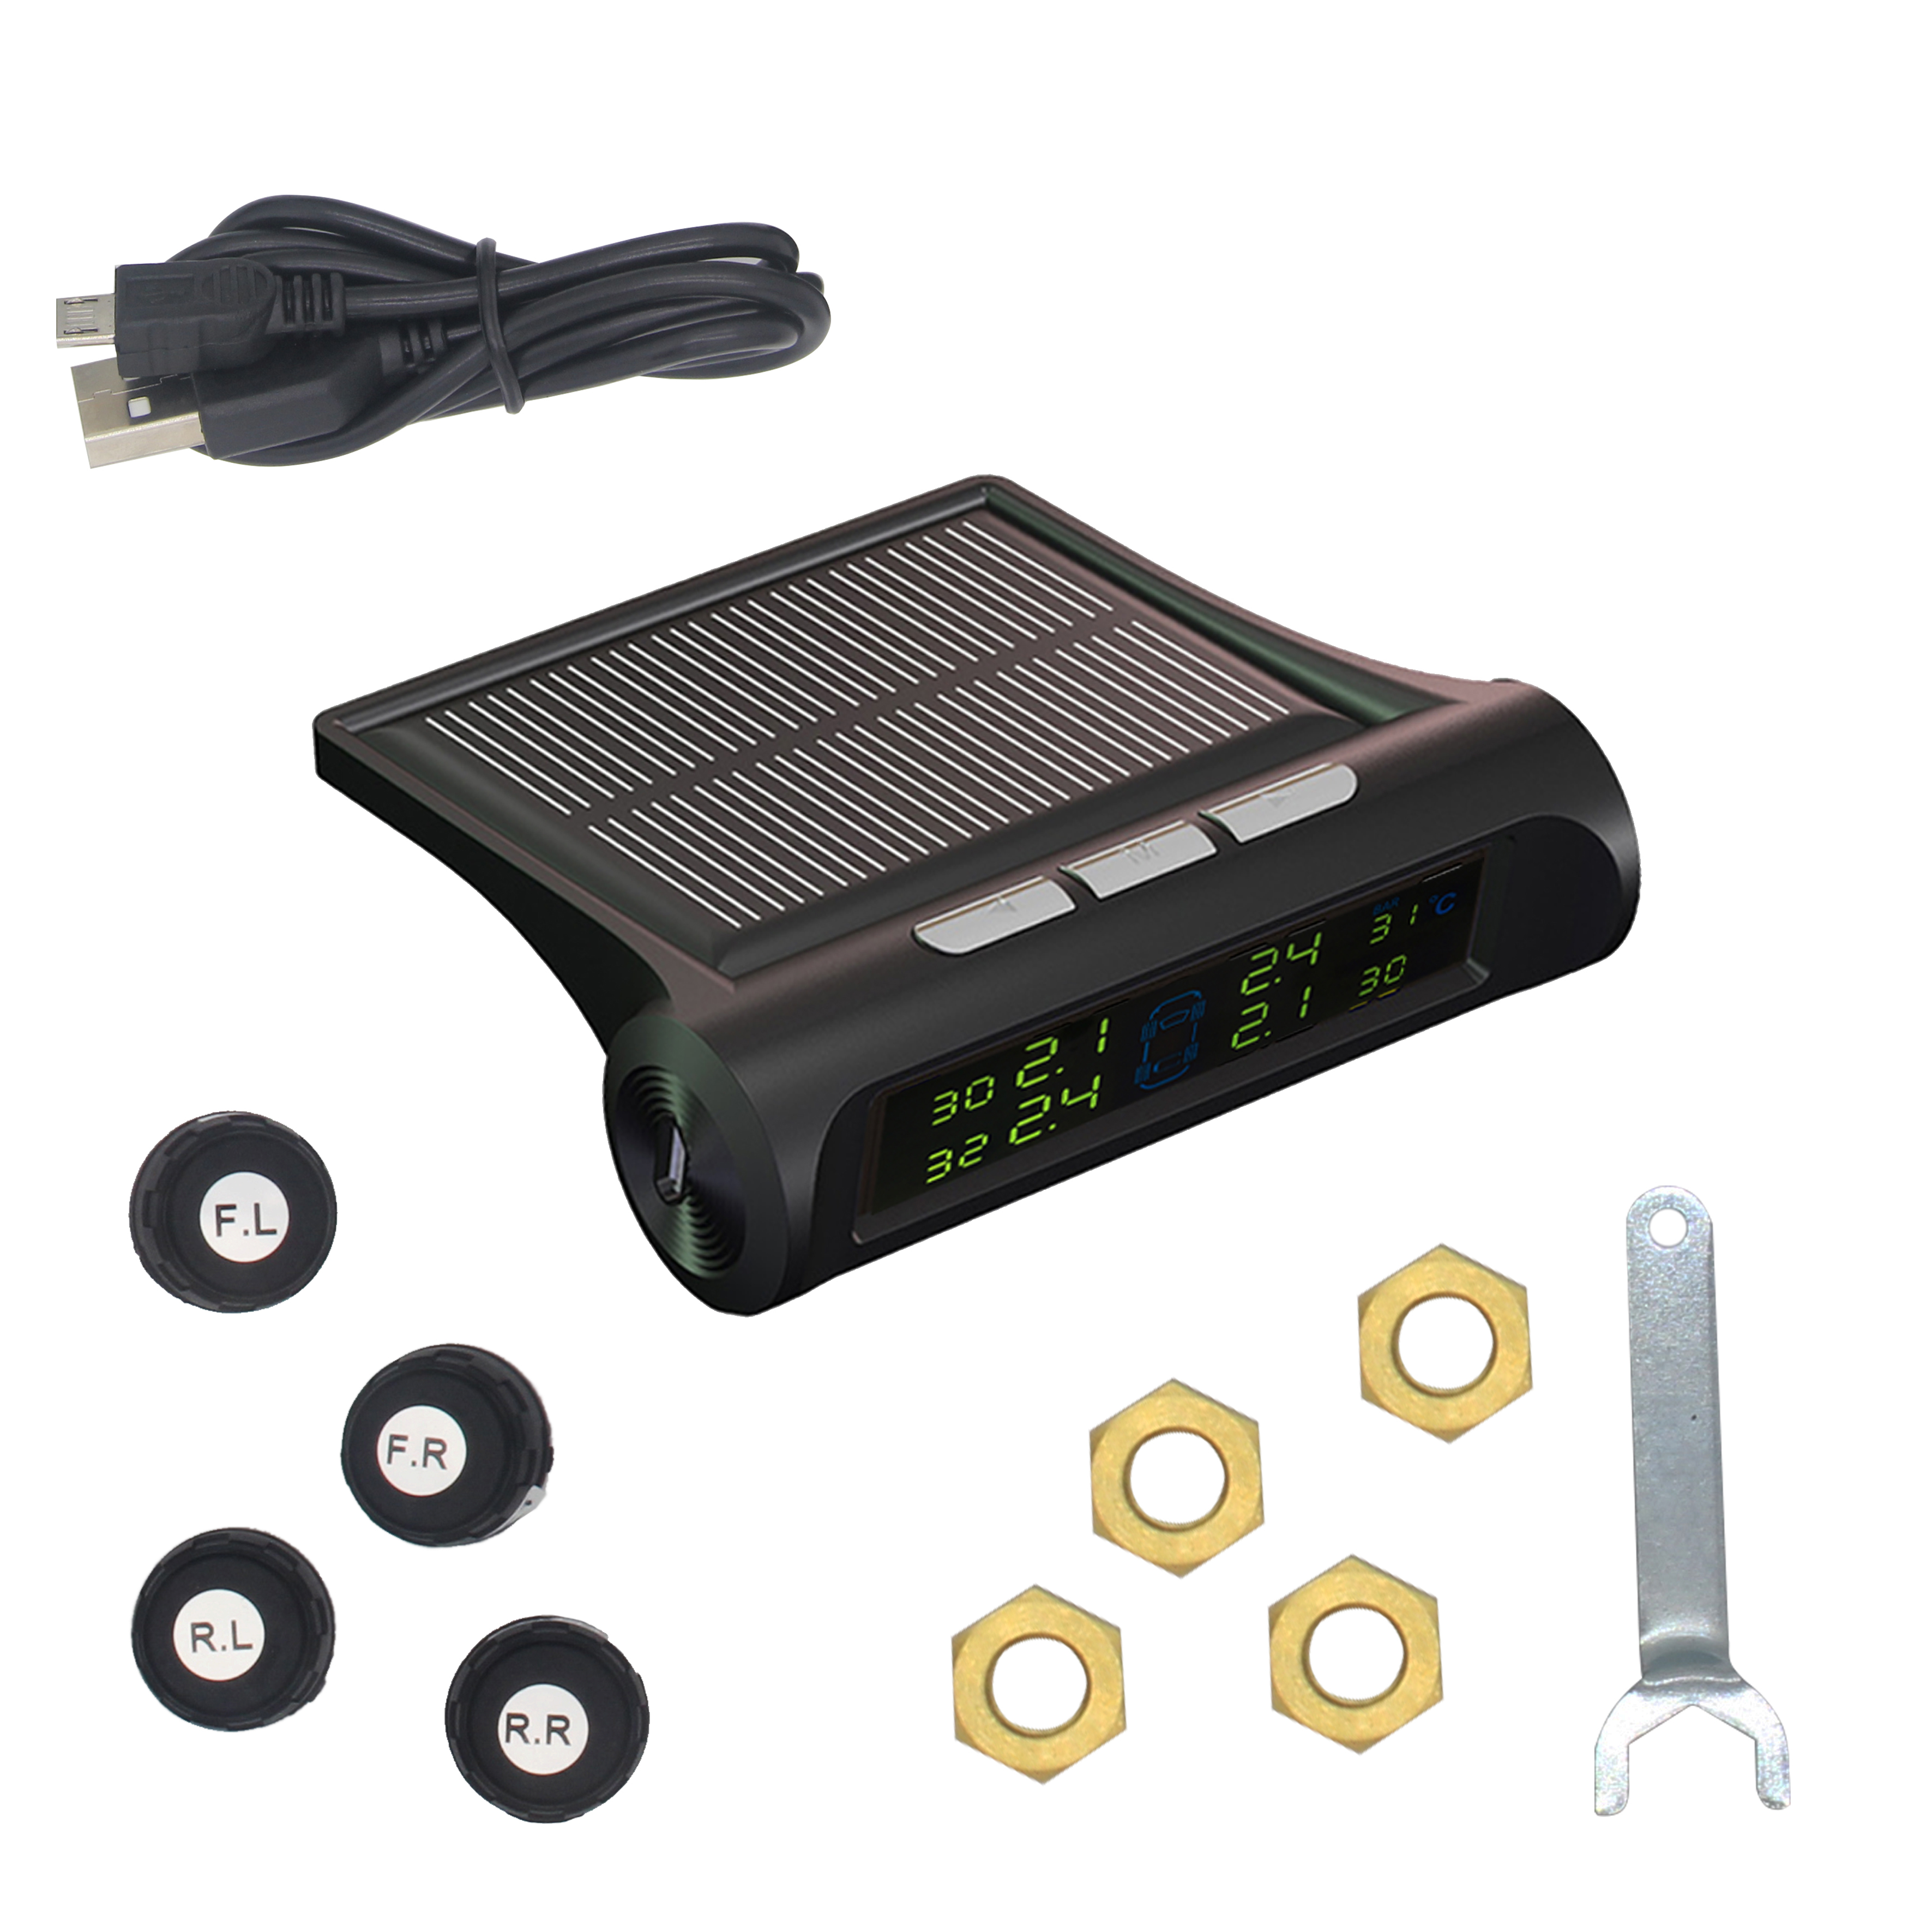 Smart Car font b TPMS b font Tyre Pressure Monitoring System Solar Power charging Digital LCD